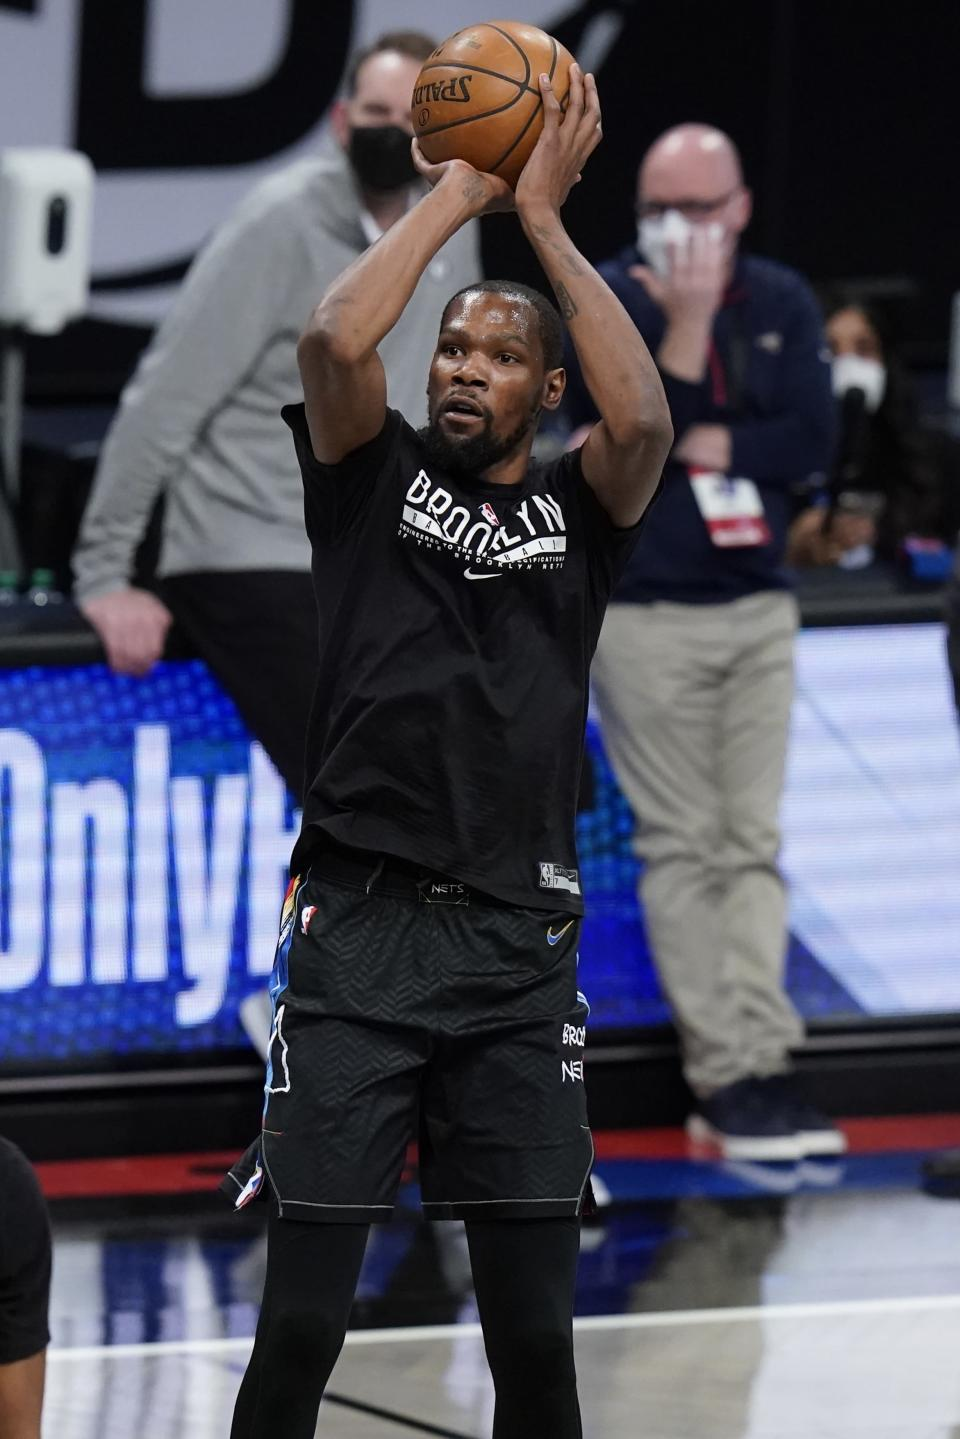 Brooklyn Nets' Kevin Durant works out before an NBA basketball game against the New Orleans Pelicans Wednesday, April 7, 2021, in New York. (AP Photo/Frank Franklin II)